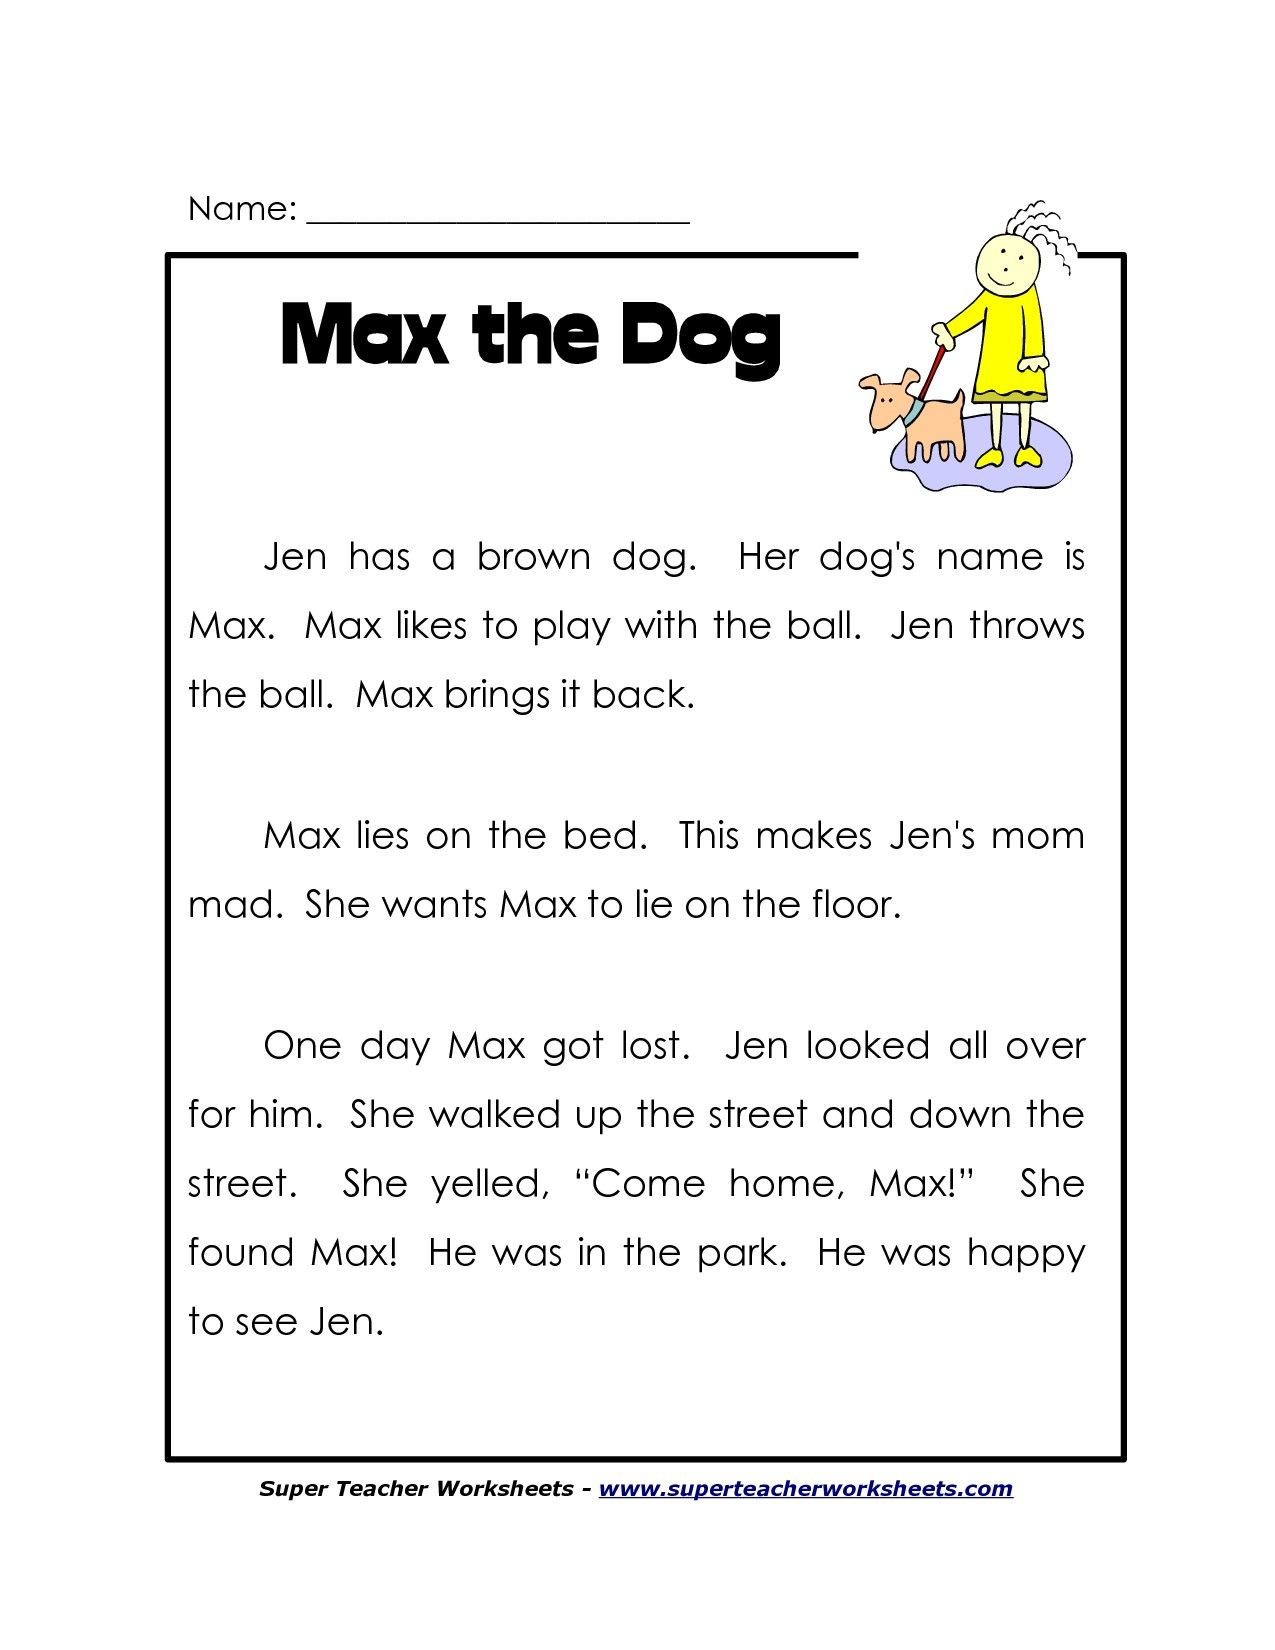 Worksheets 1st Grade Reading Comprehension Worksheet 1st grade reading worksheets free lots more on superteacherworksheets com